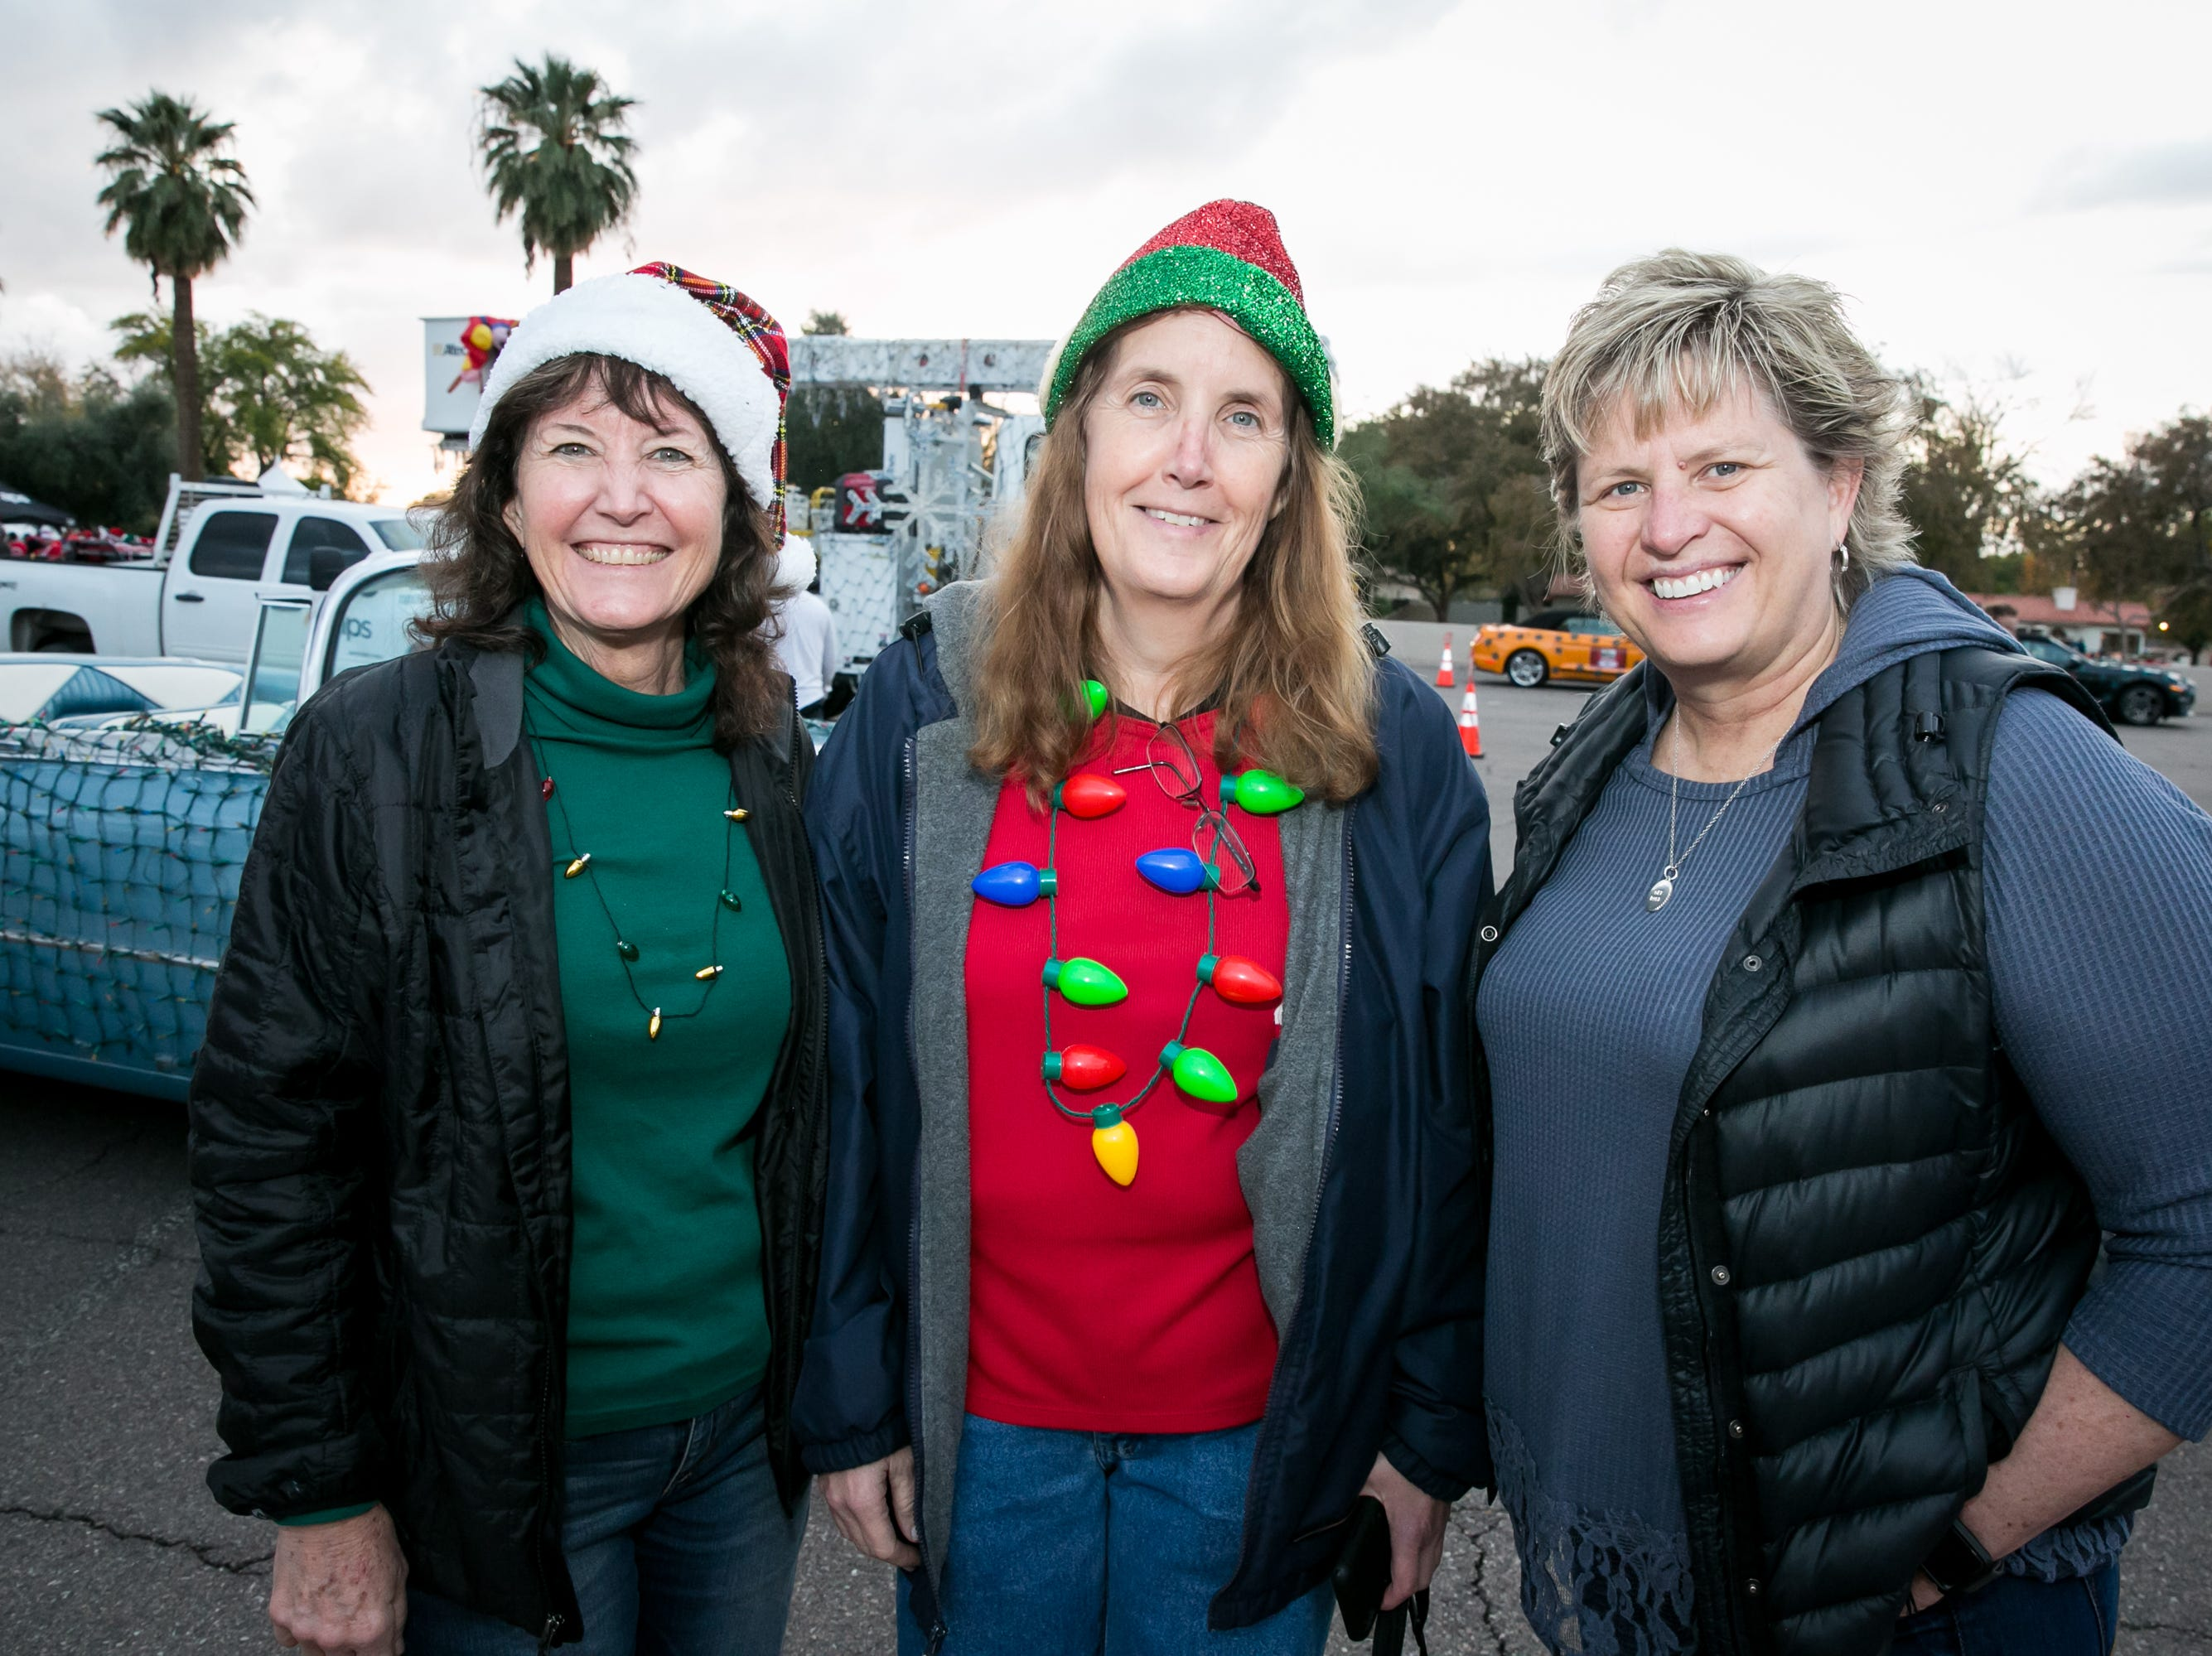 This trio went all out during the APS Electric Light Parade in Central Phoenix on Saturday, December 1, 2018.